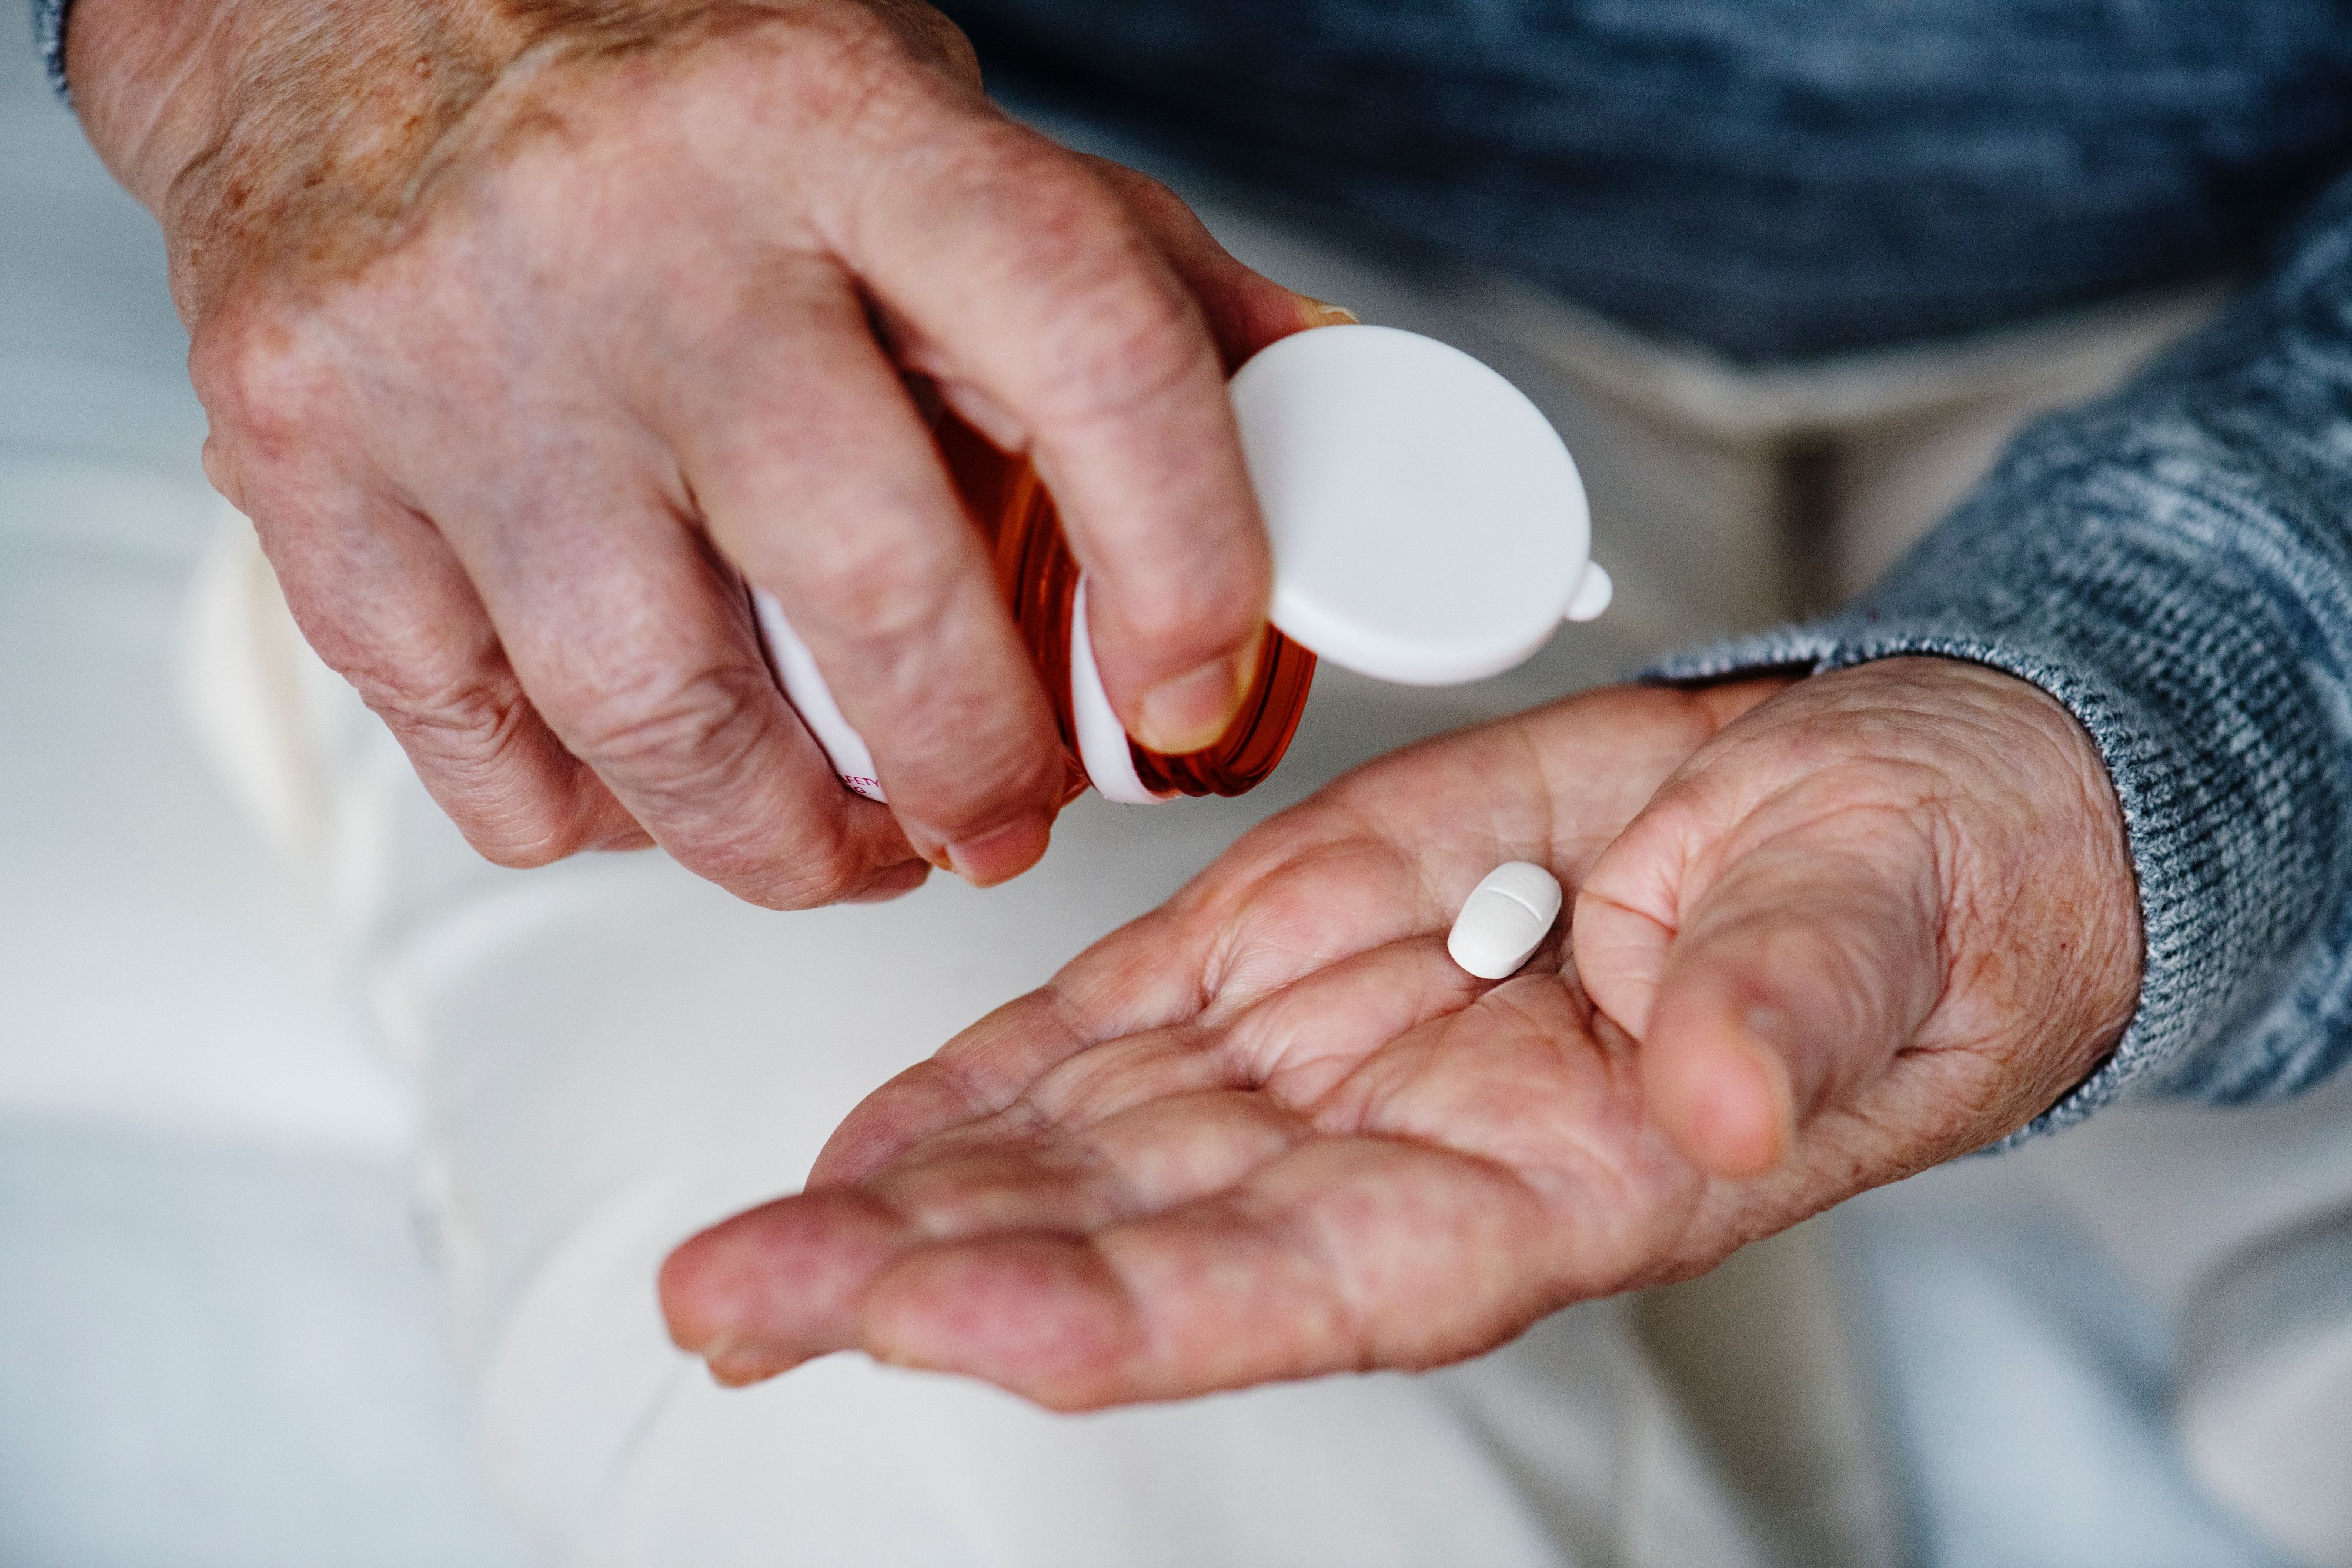 Transparency seems to be worse in cardiac and diabetes drugs.